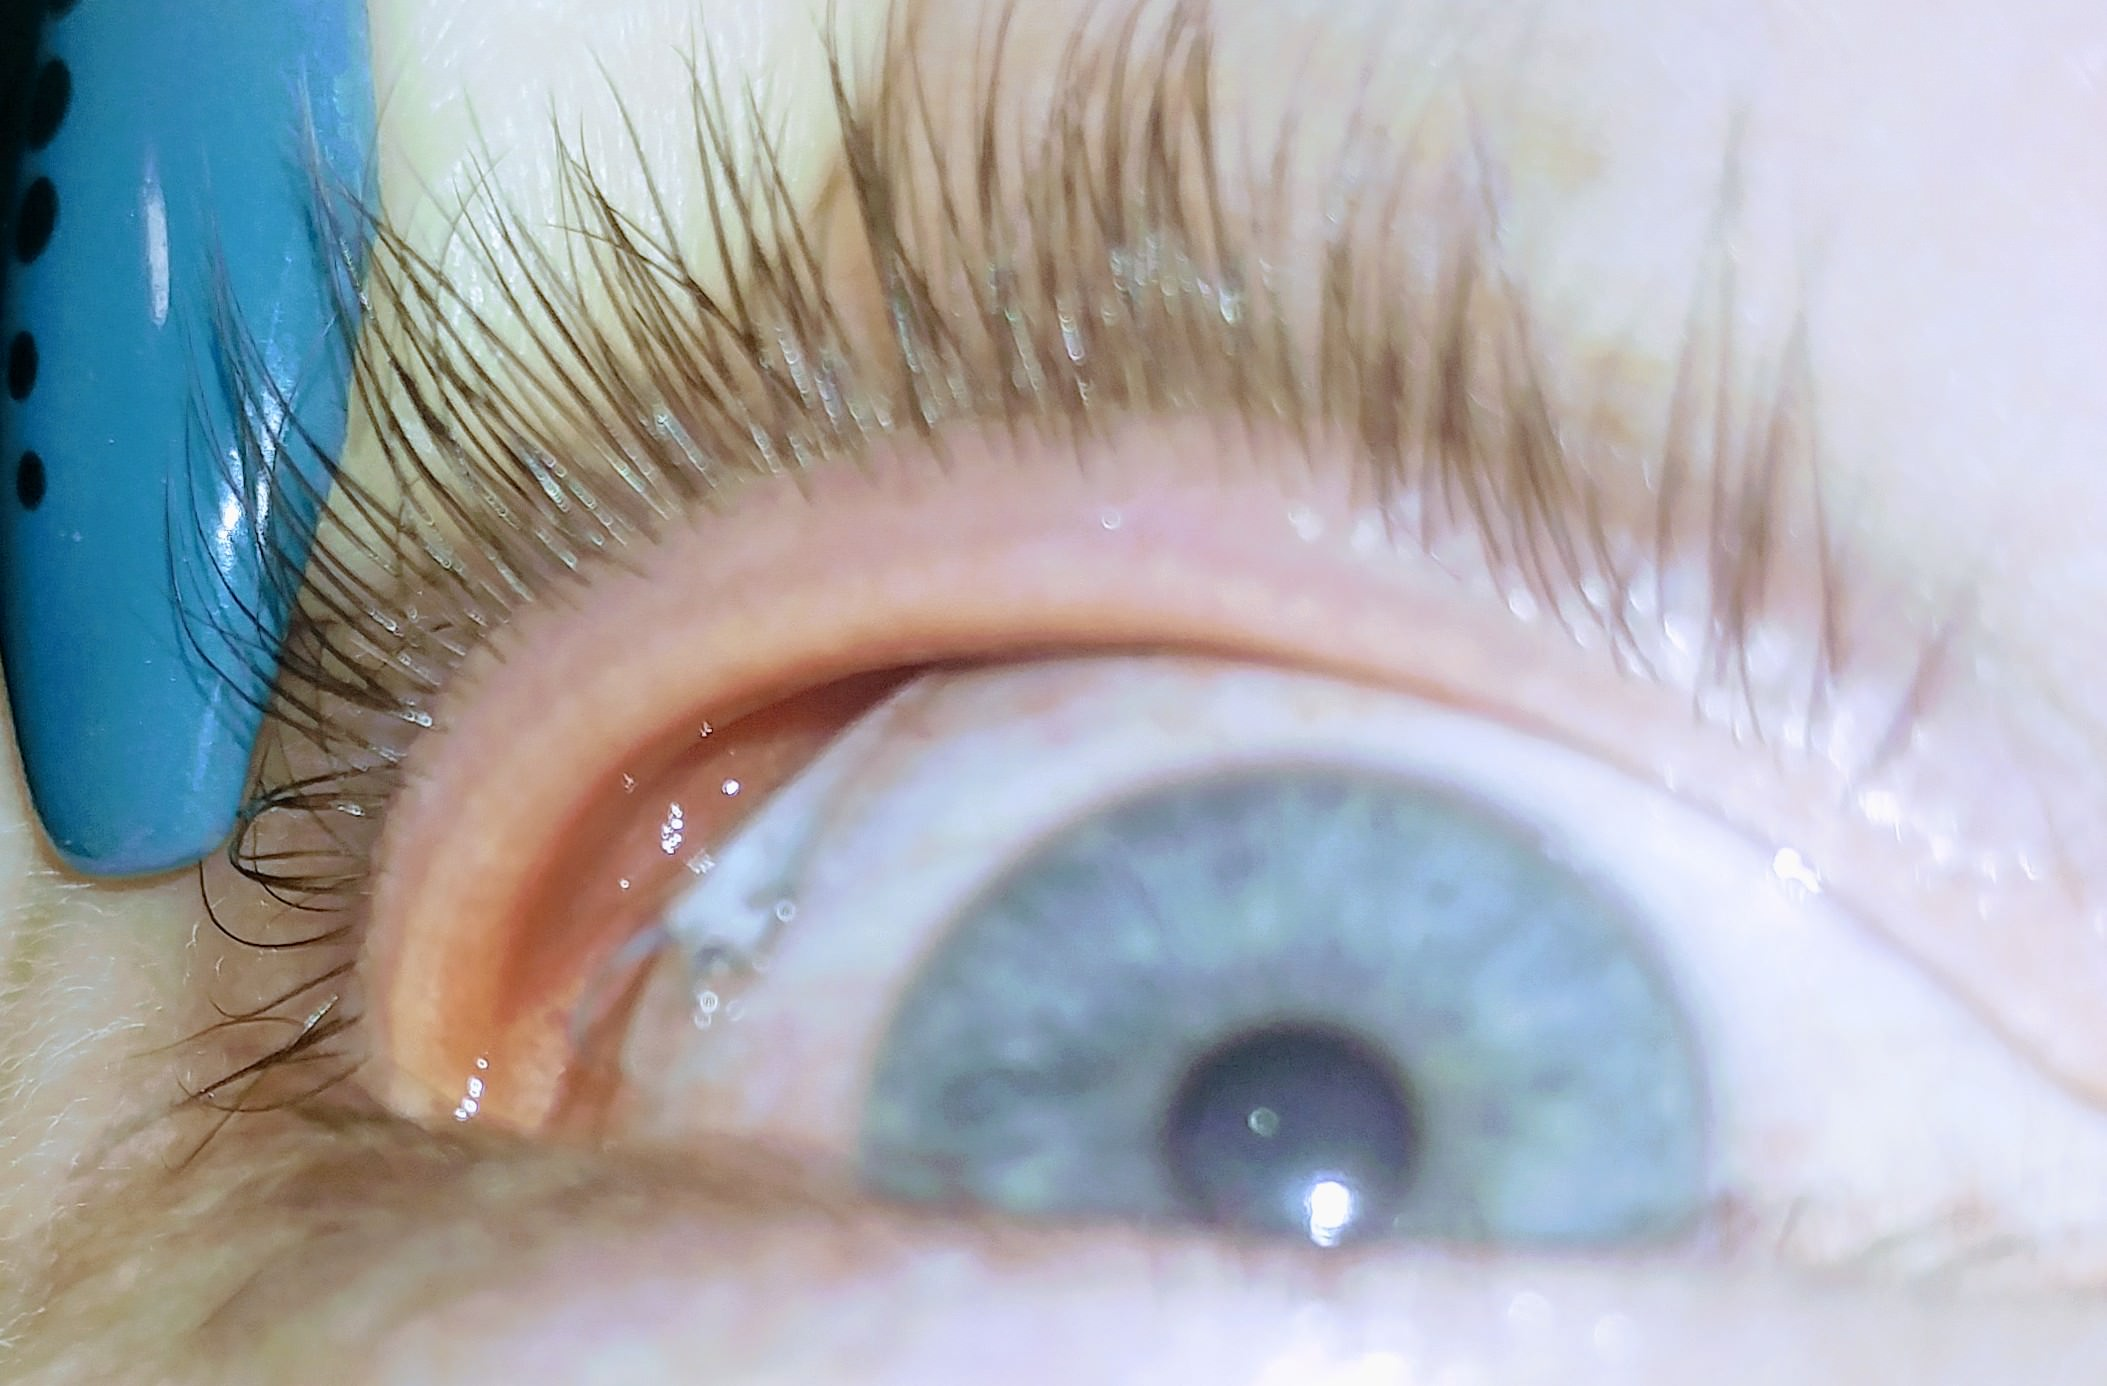 Contact Lenses Are Difficult To Remove And The Eyes Feel Sore?